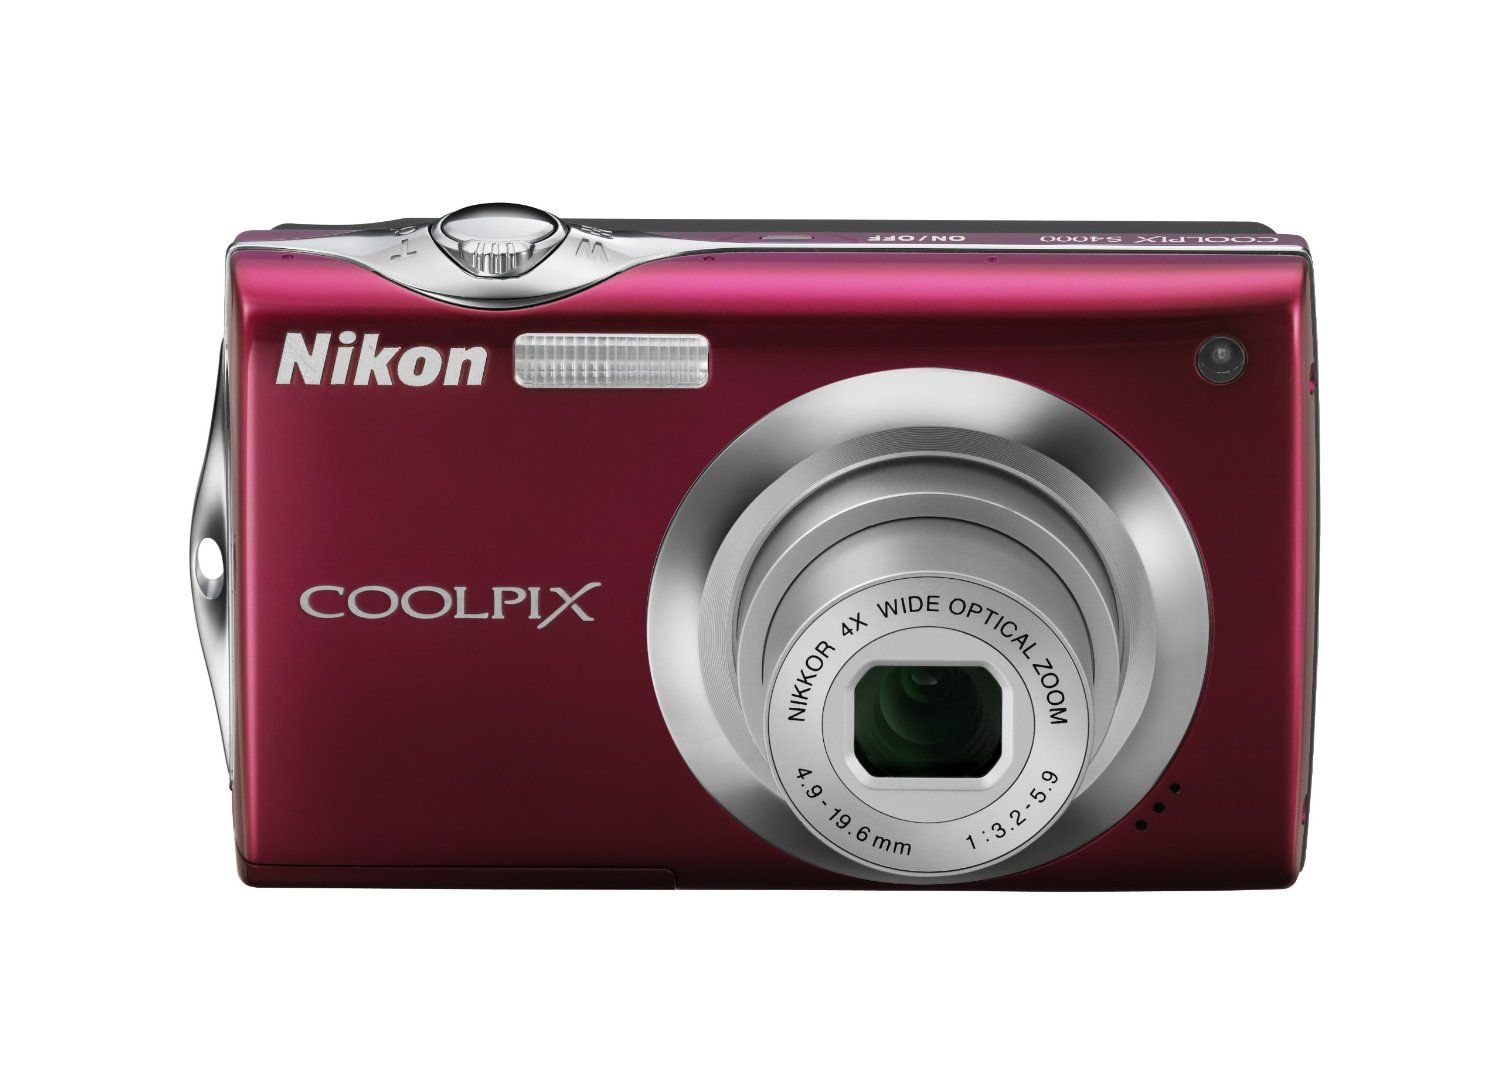 nikon coolpix s4000 12 mp digital camera with 4x optical vibration rh pinterest com nikon coolpix s4000 manual español nikon coolpix s4000 review